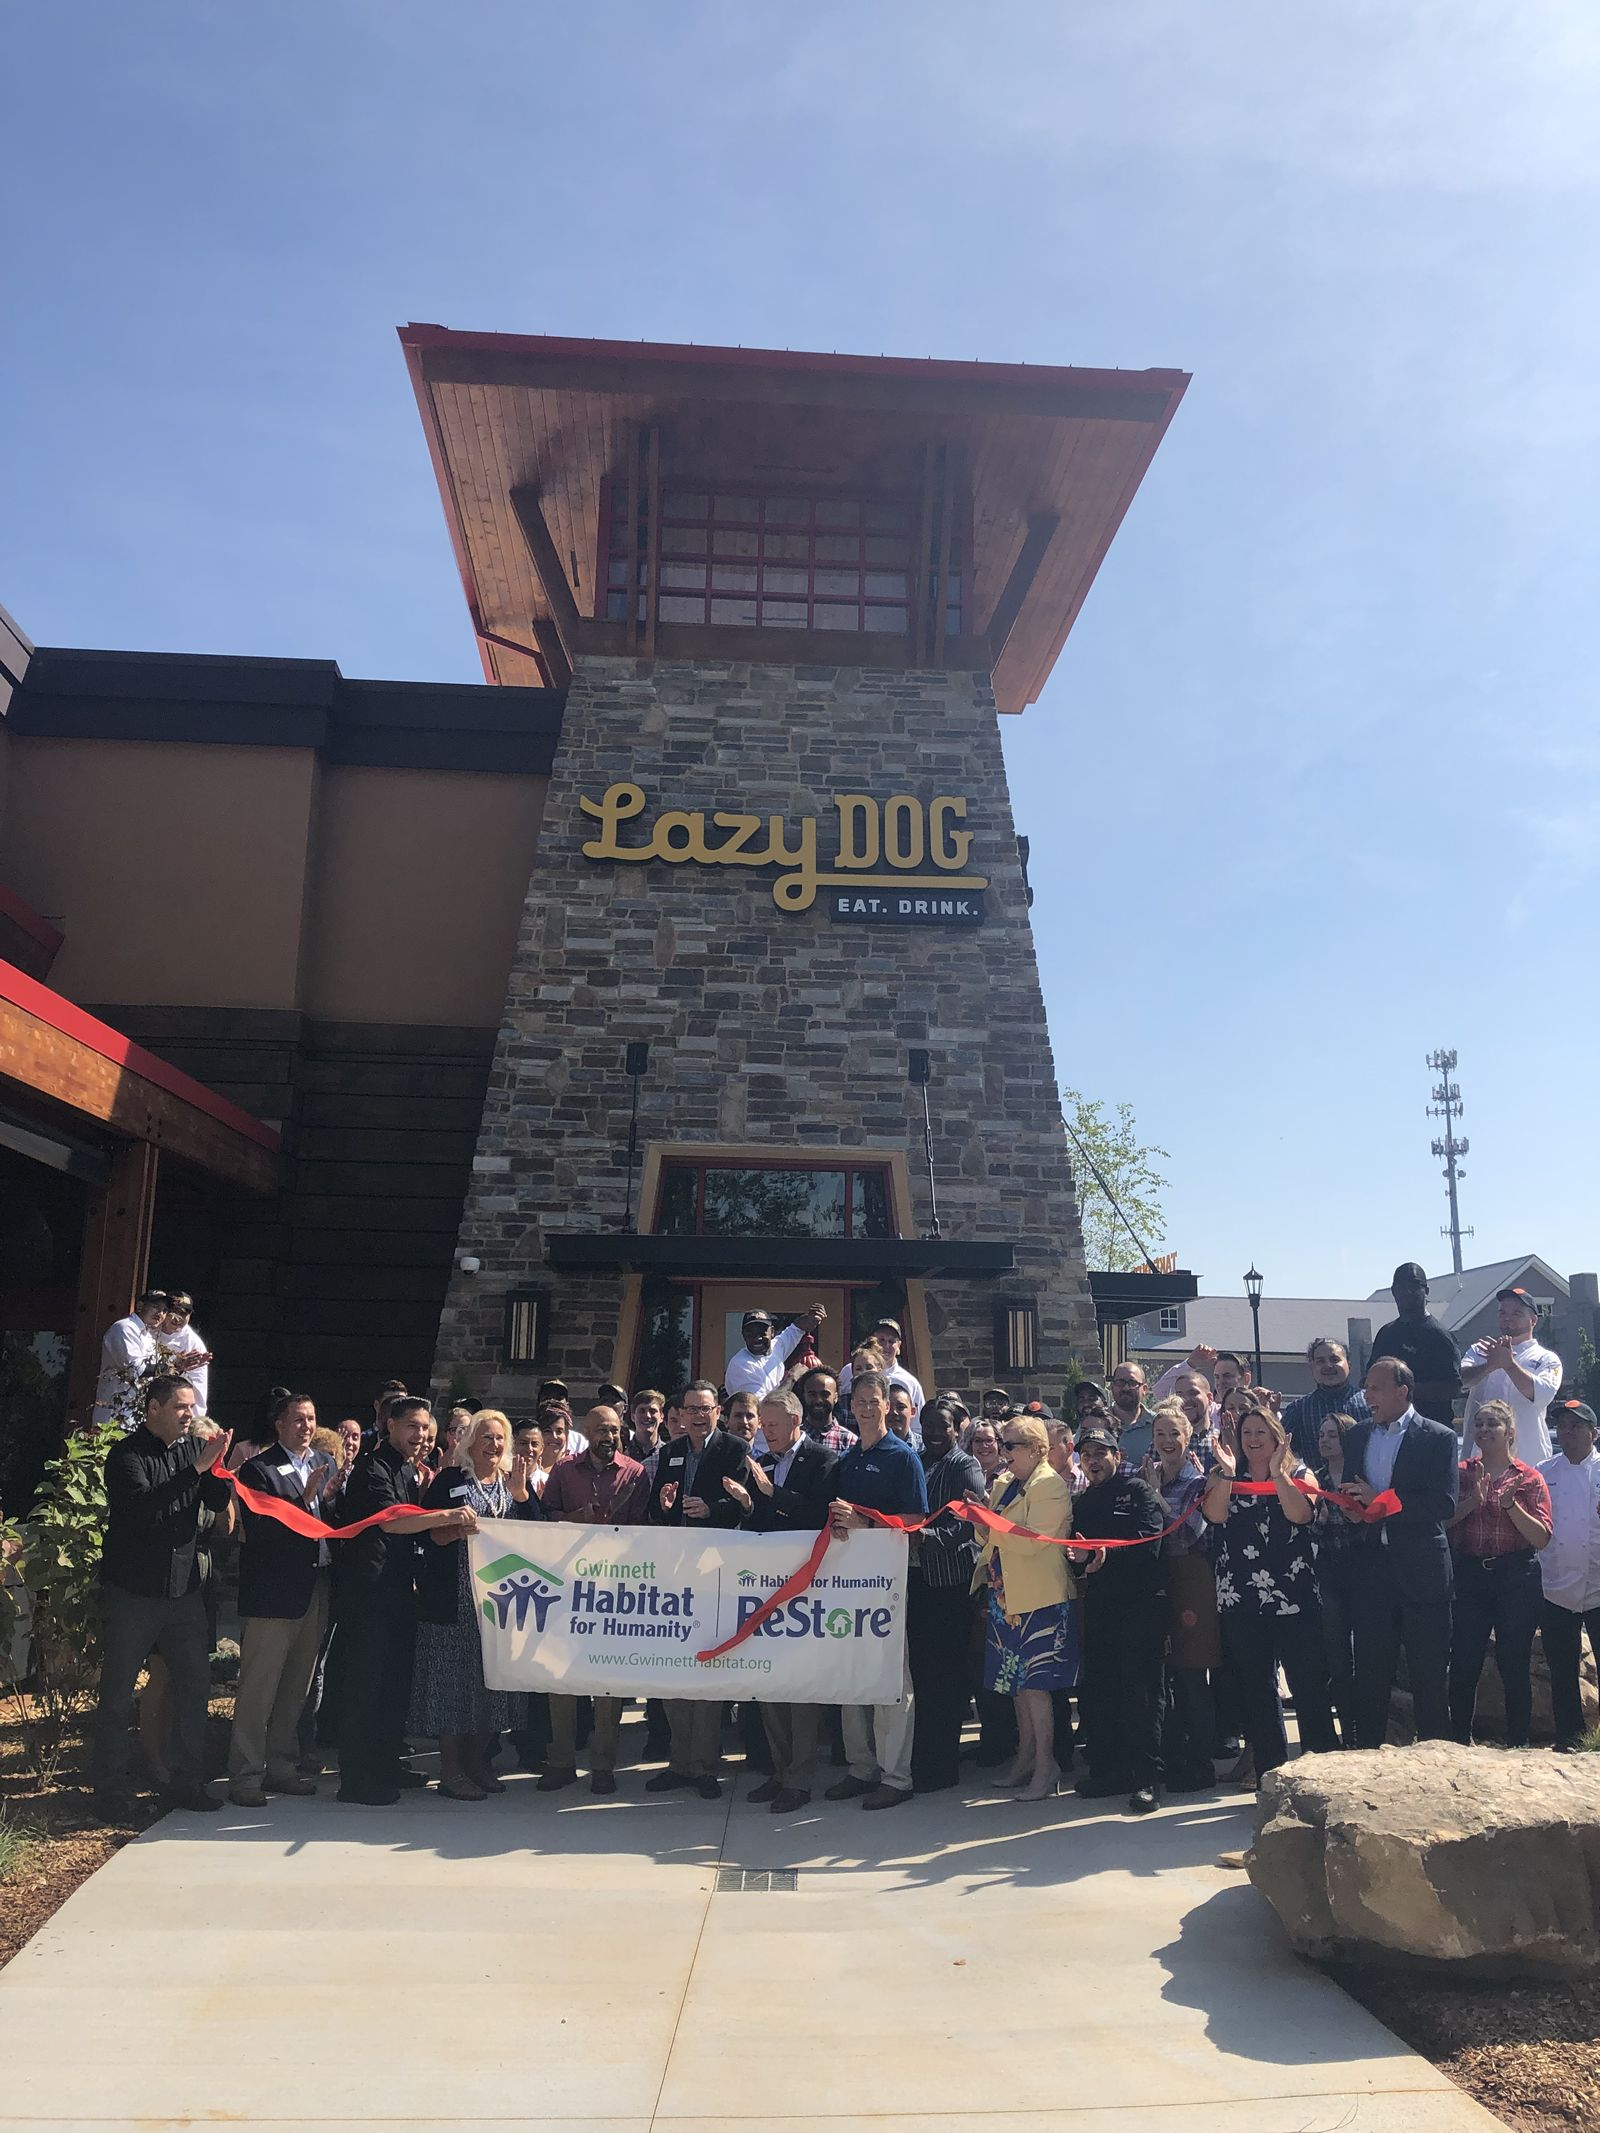 Lazy Dog Restaurant & Bar Opens in Peachtree Corners